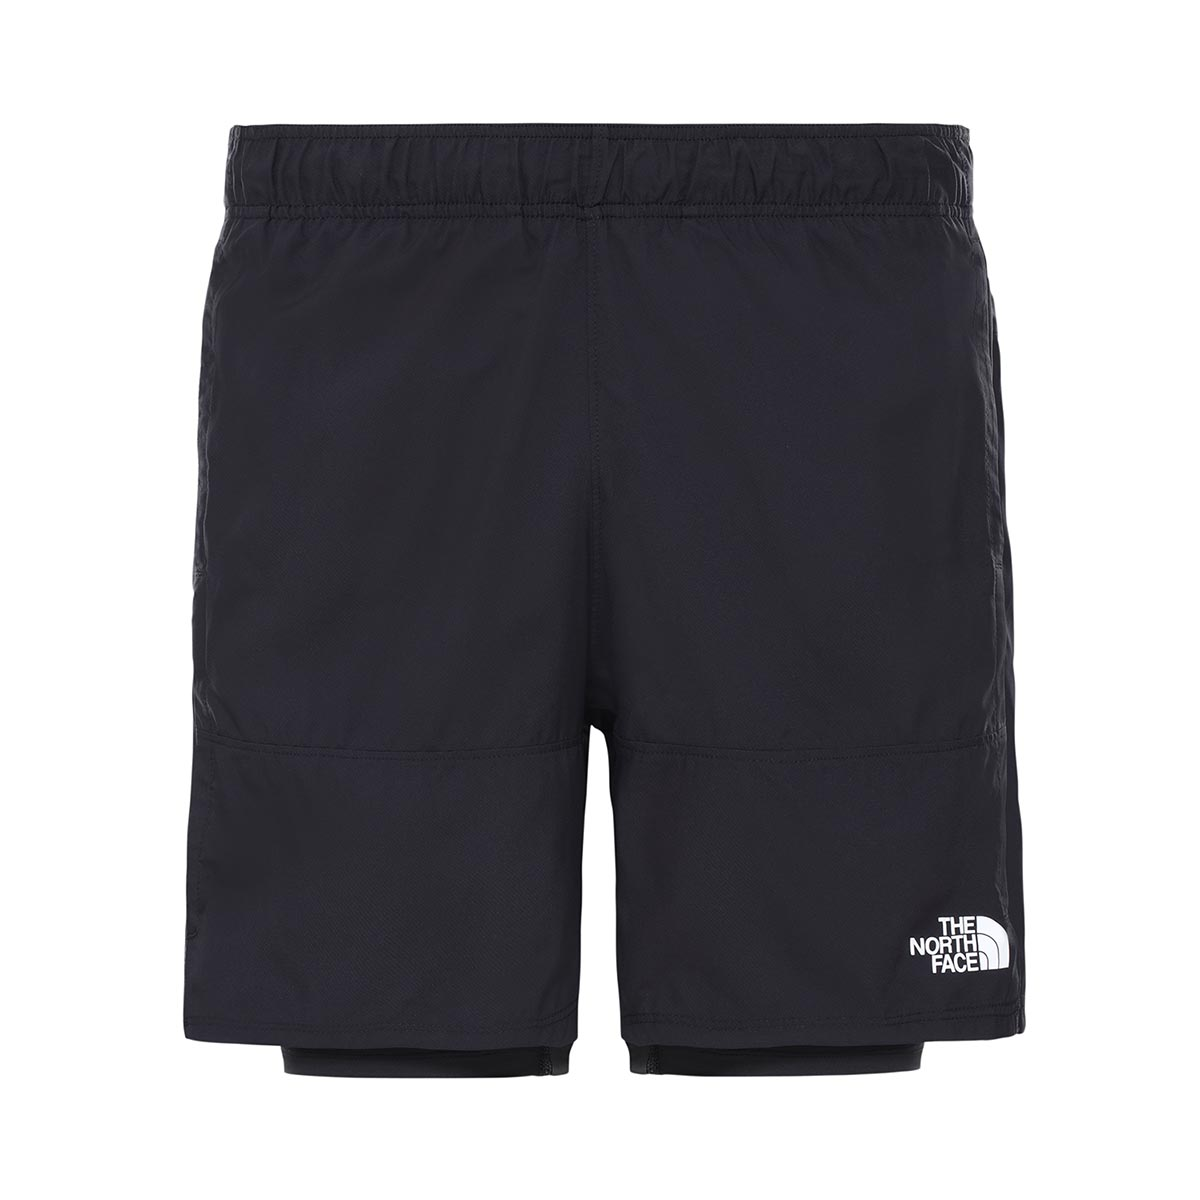 THE NORTH FACE - ACTIVE TRAIL DUAL SHORTS